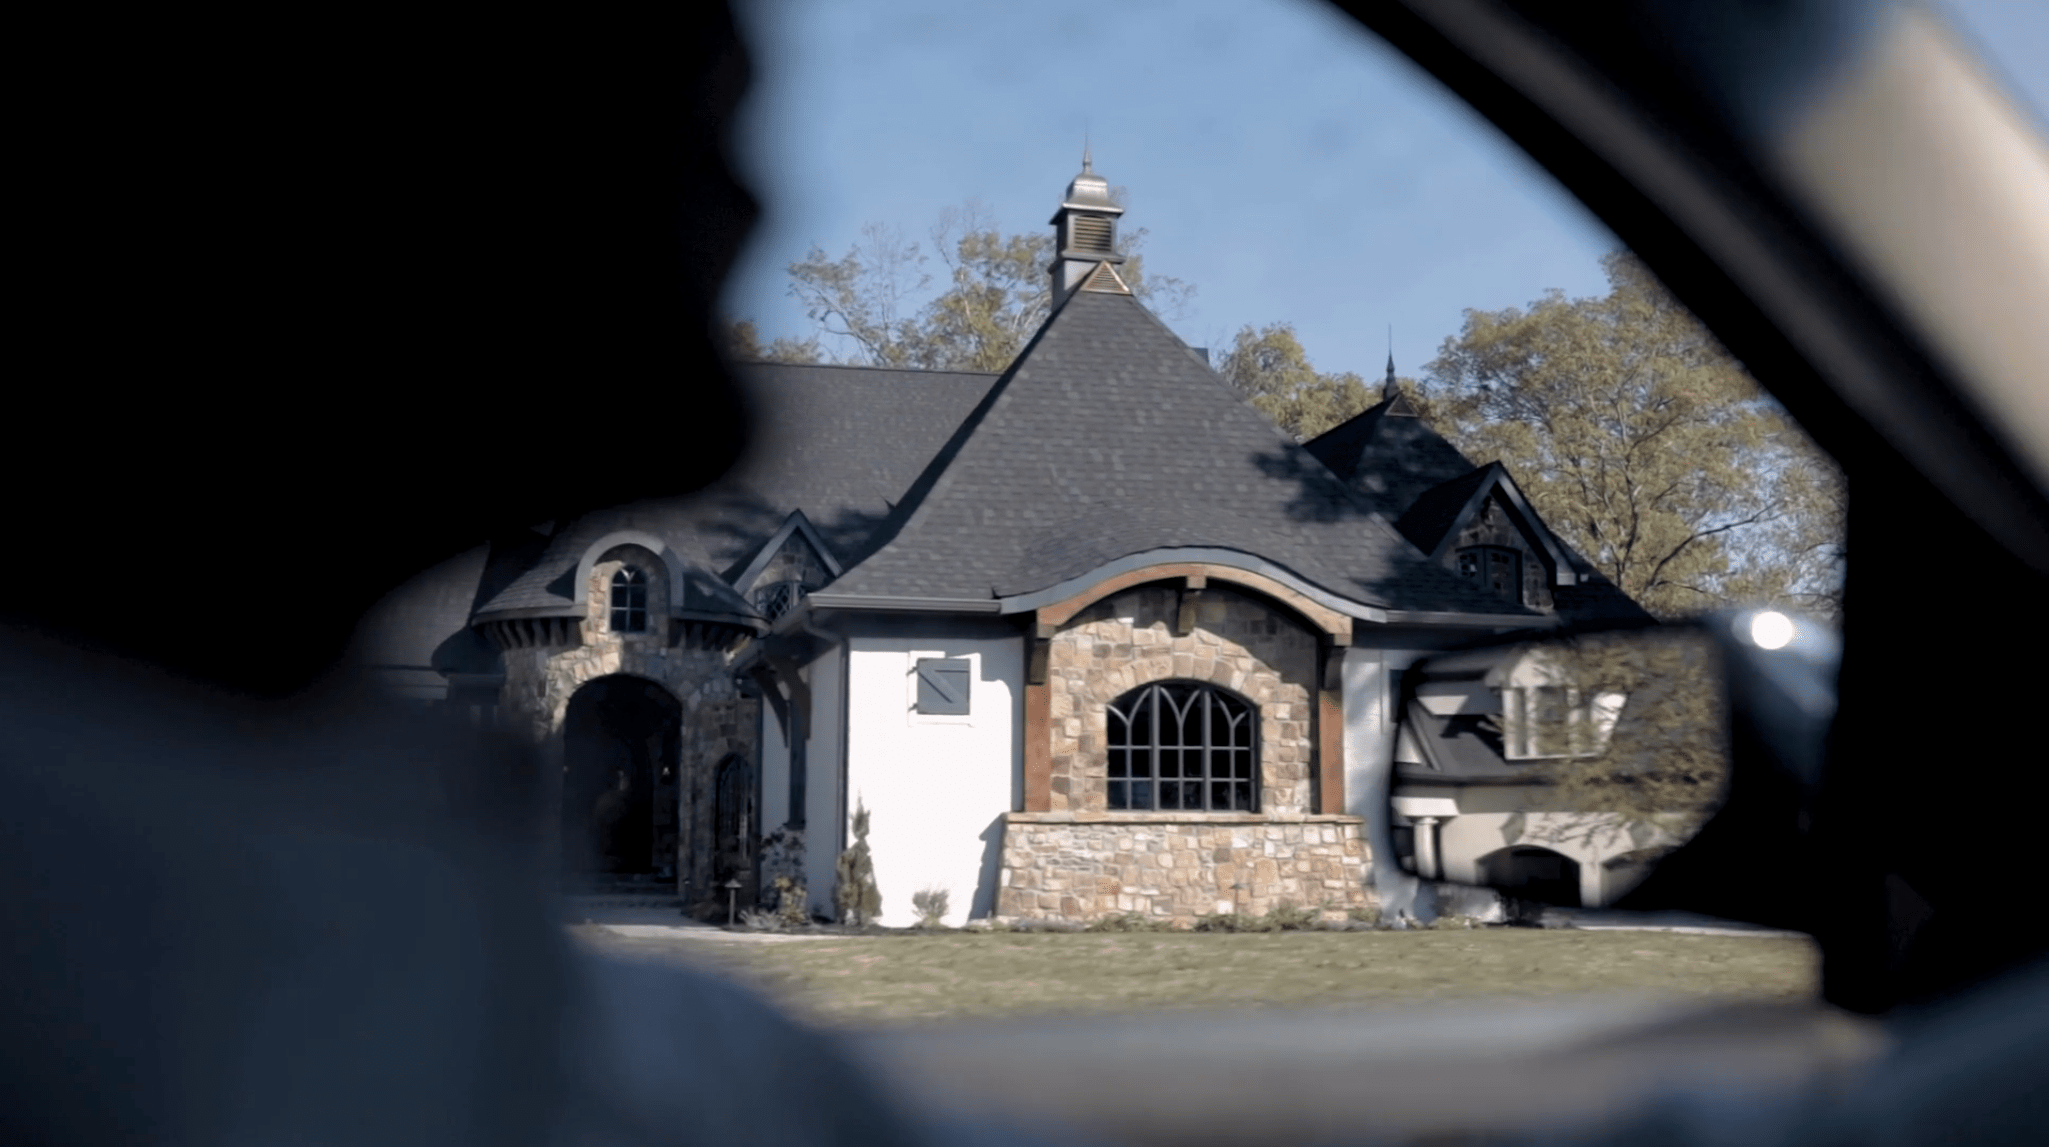 Shot of the front of a home as seen from inside a car as it drives by.